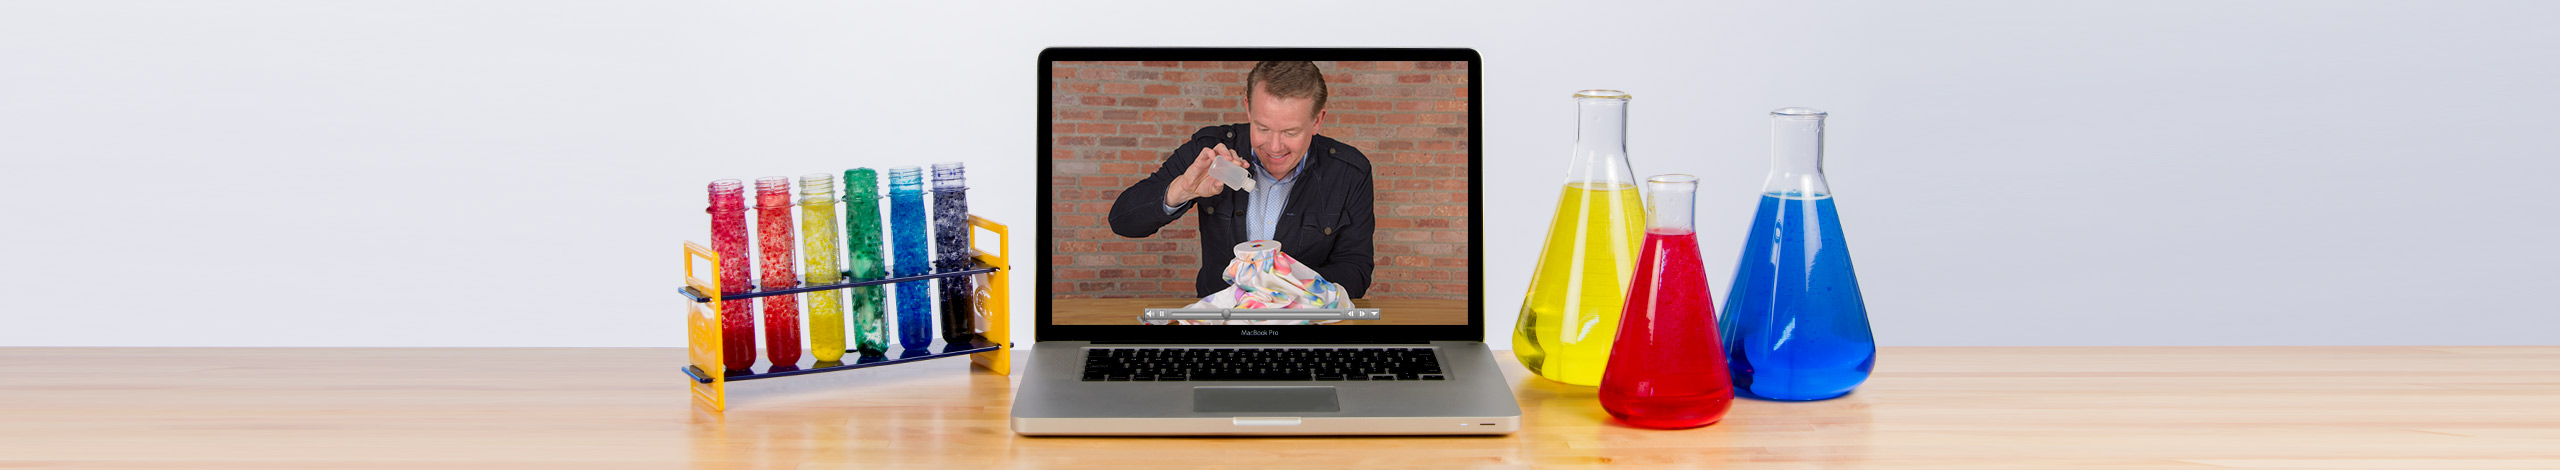 Steve Spangler Online Learning Virtual Science Workshop